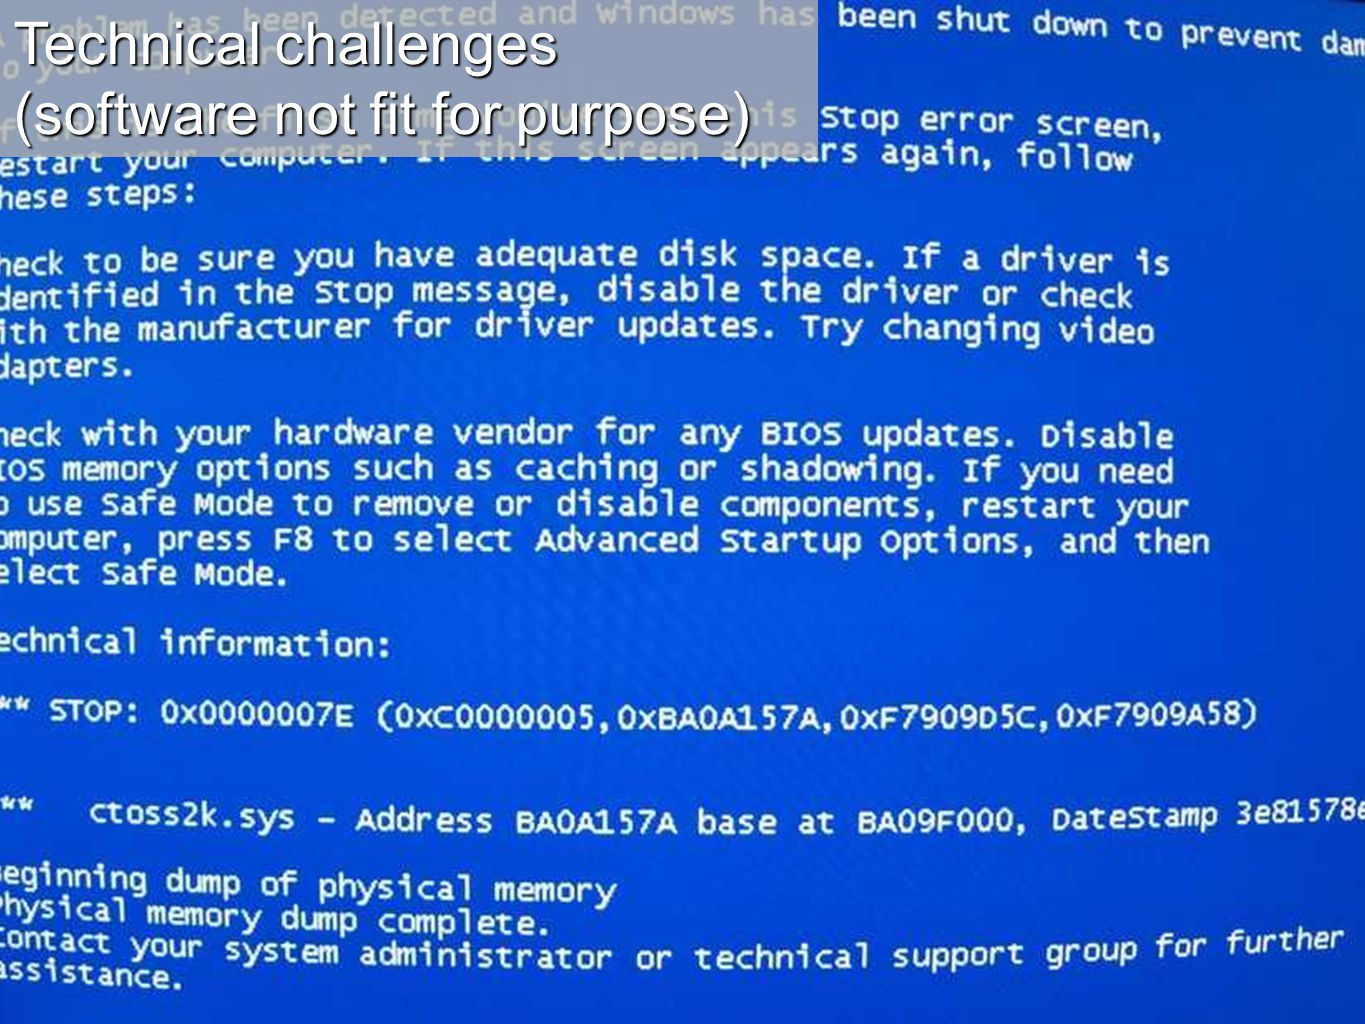 Technical challenges (software not fit for purpose)